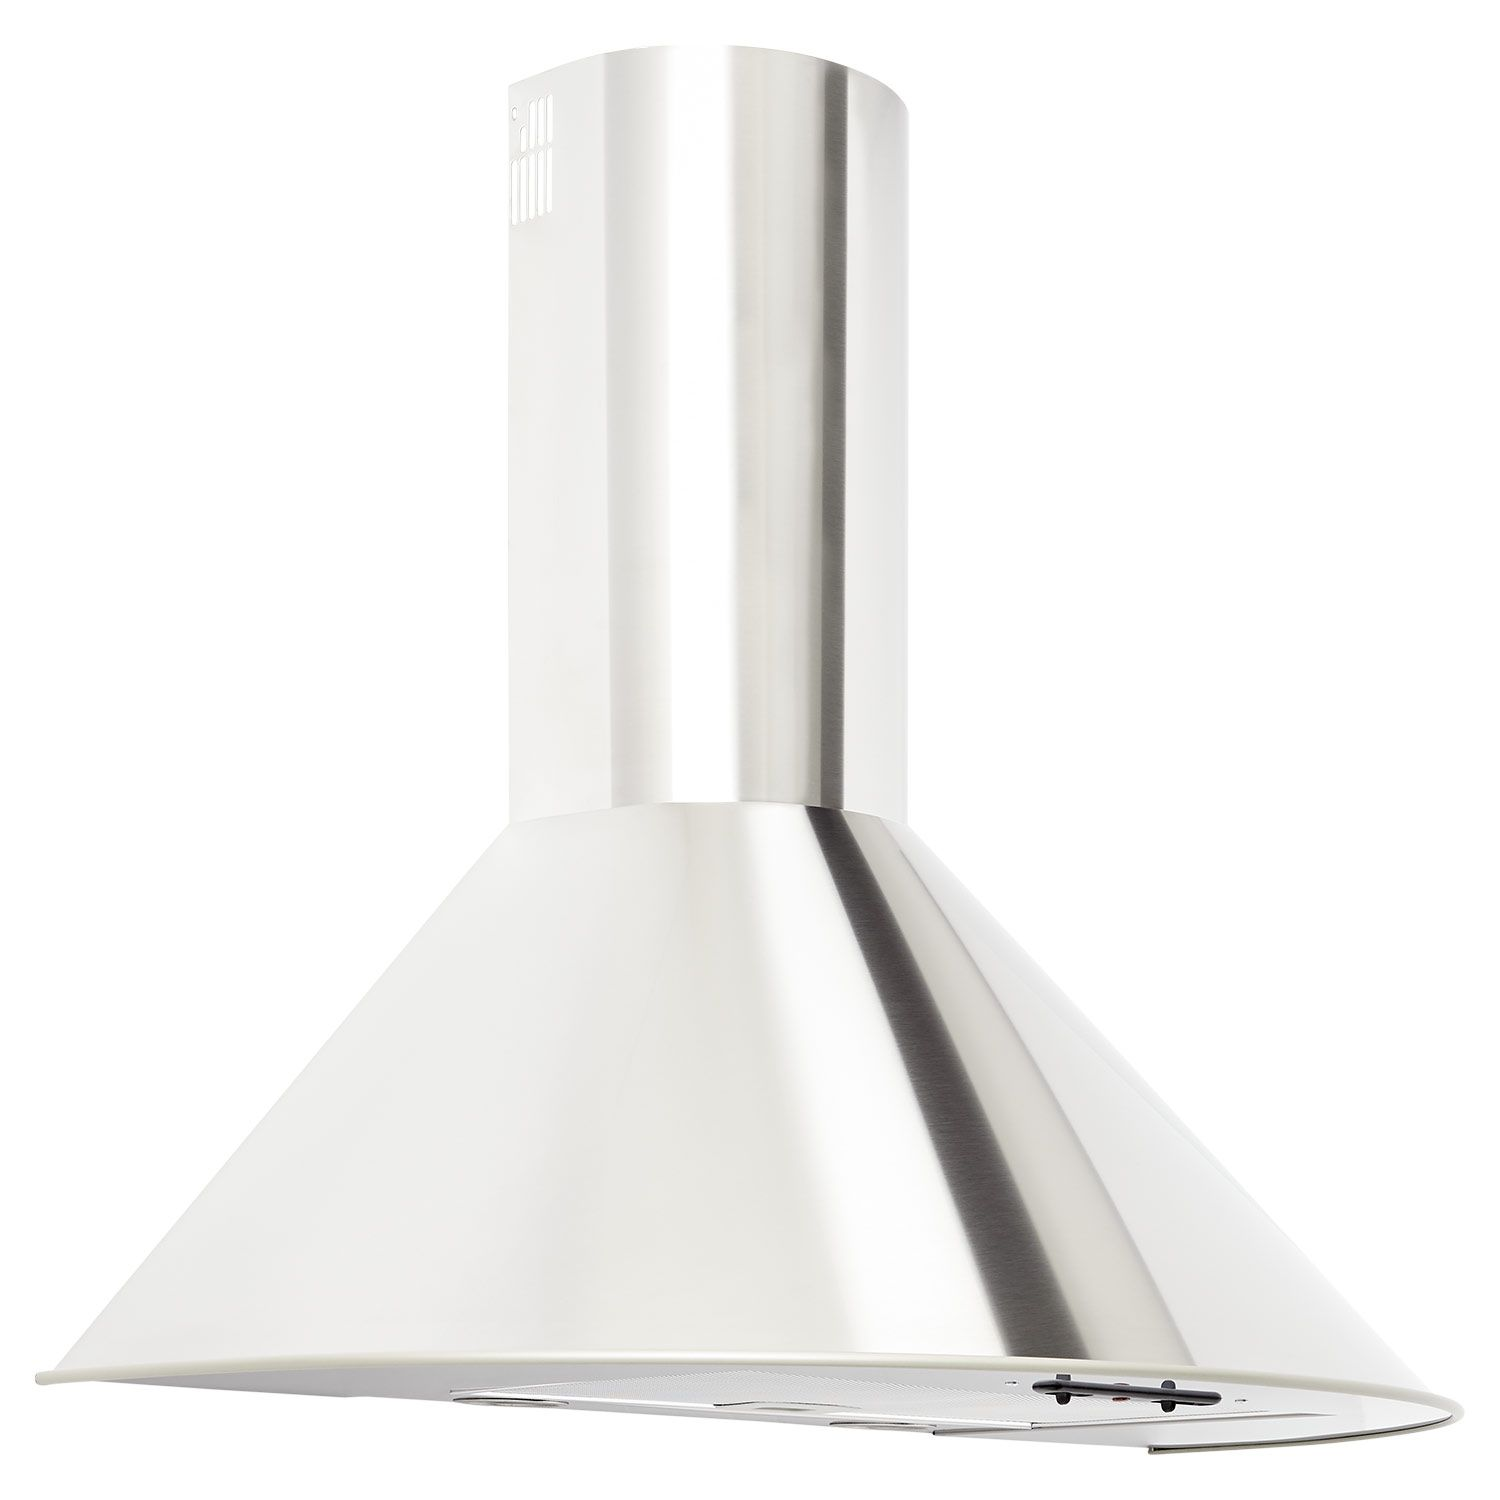 24 Carulli Series Stainless Steel Wall Mount Range Hood 600 Cfm Range Hoods Kitchen Steel Wall Wall Mount Range Hood Range Hood